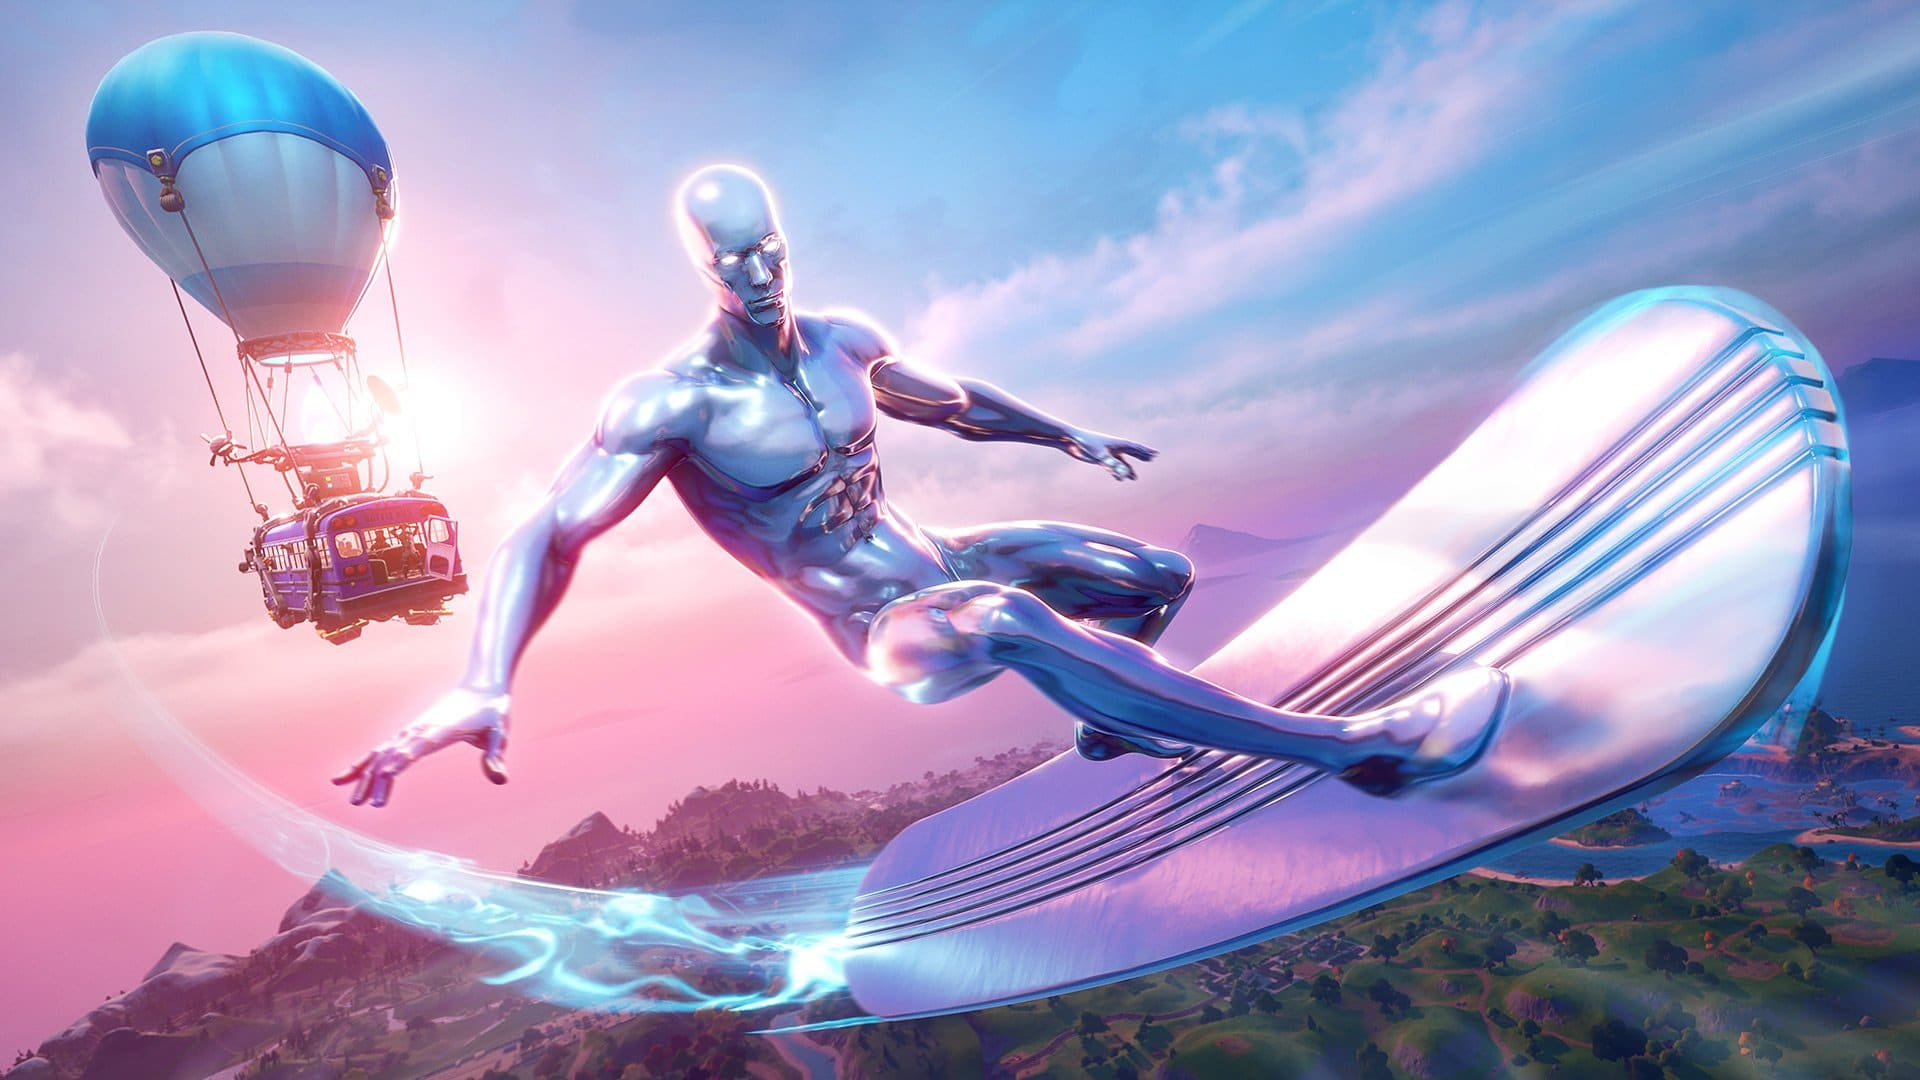 Fortnite Season 4 Leaks Reveal Silver Surfer 2 More Skin Bundles Fortnite Intel